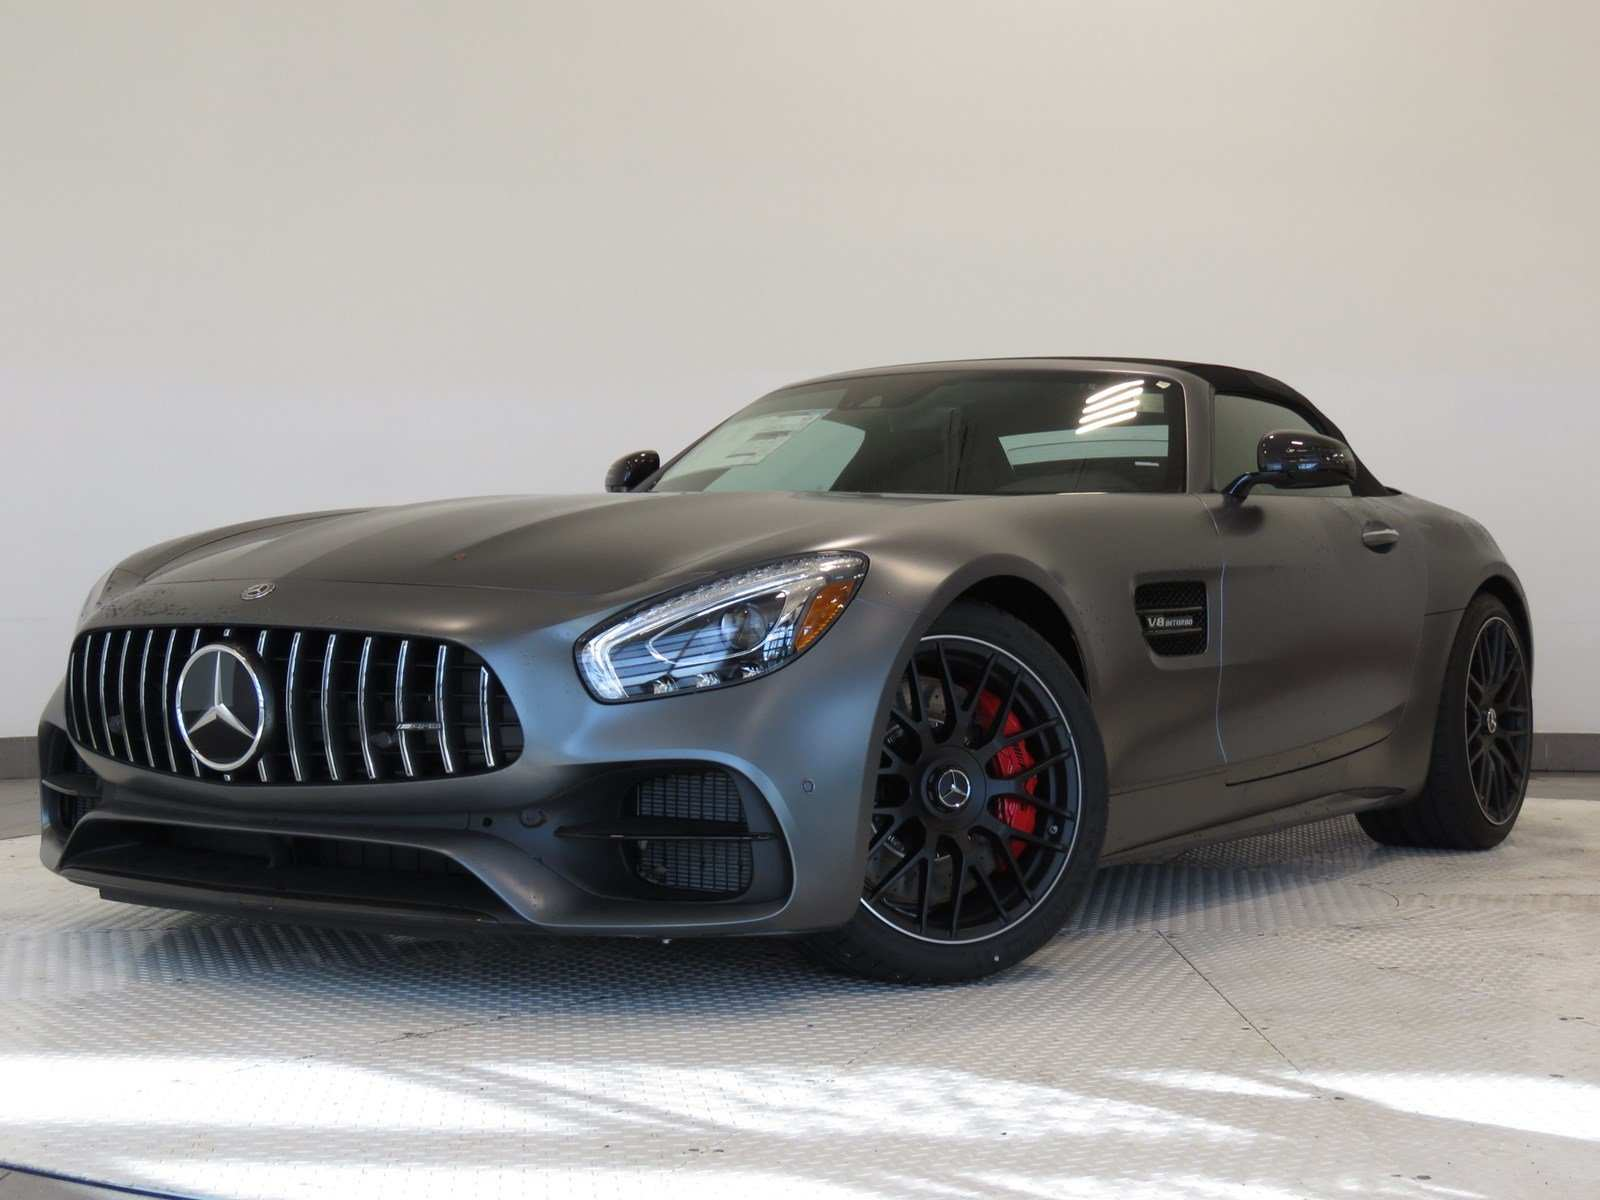 77 The Mercedes 2019 Amg Gt Pictures for Mercedes 2019 Amg Gt